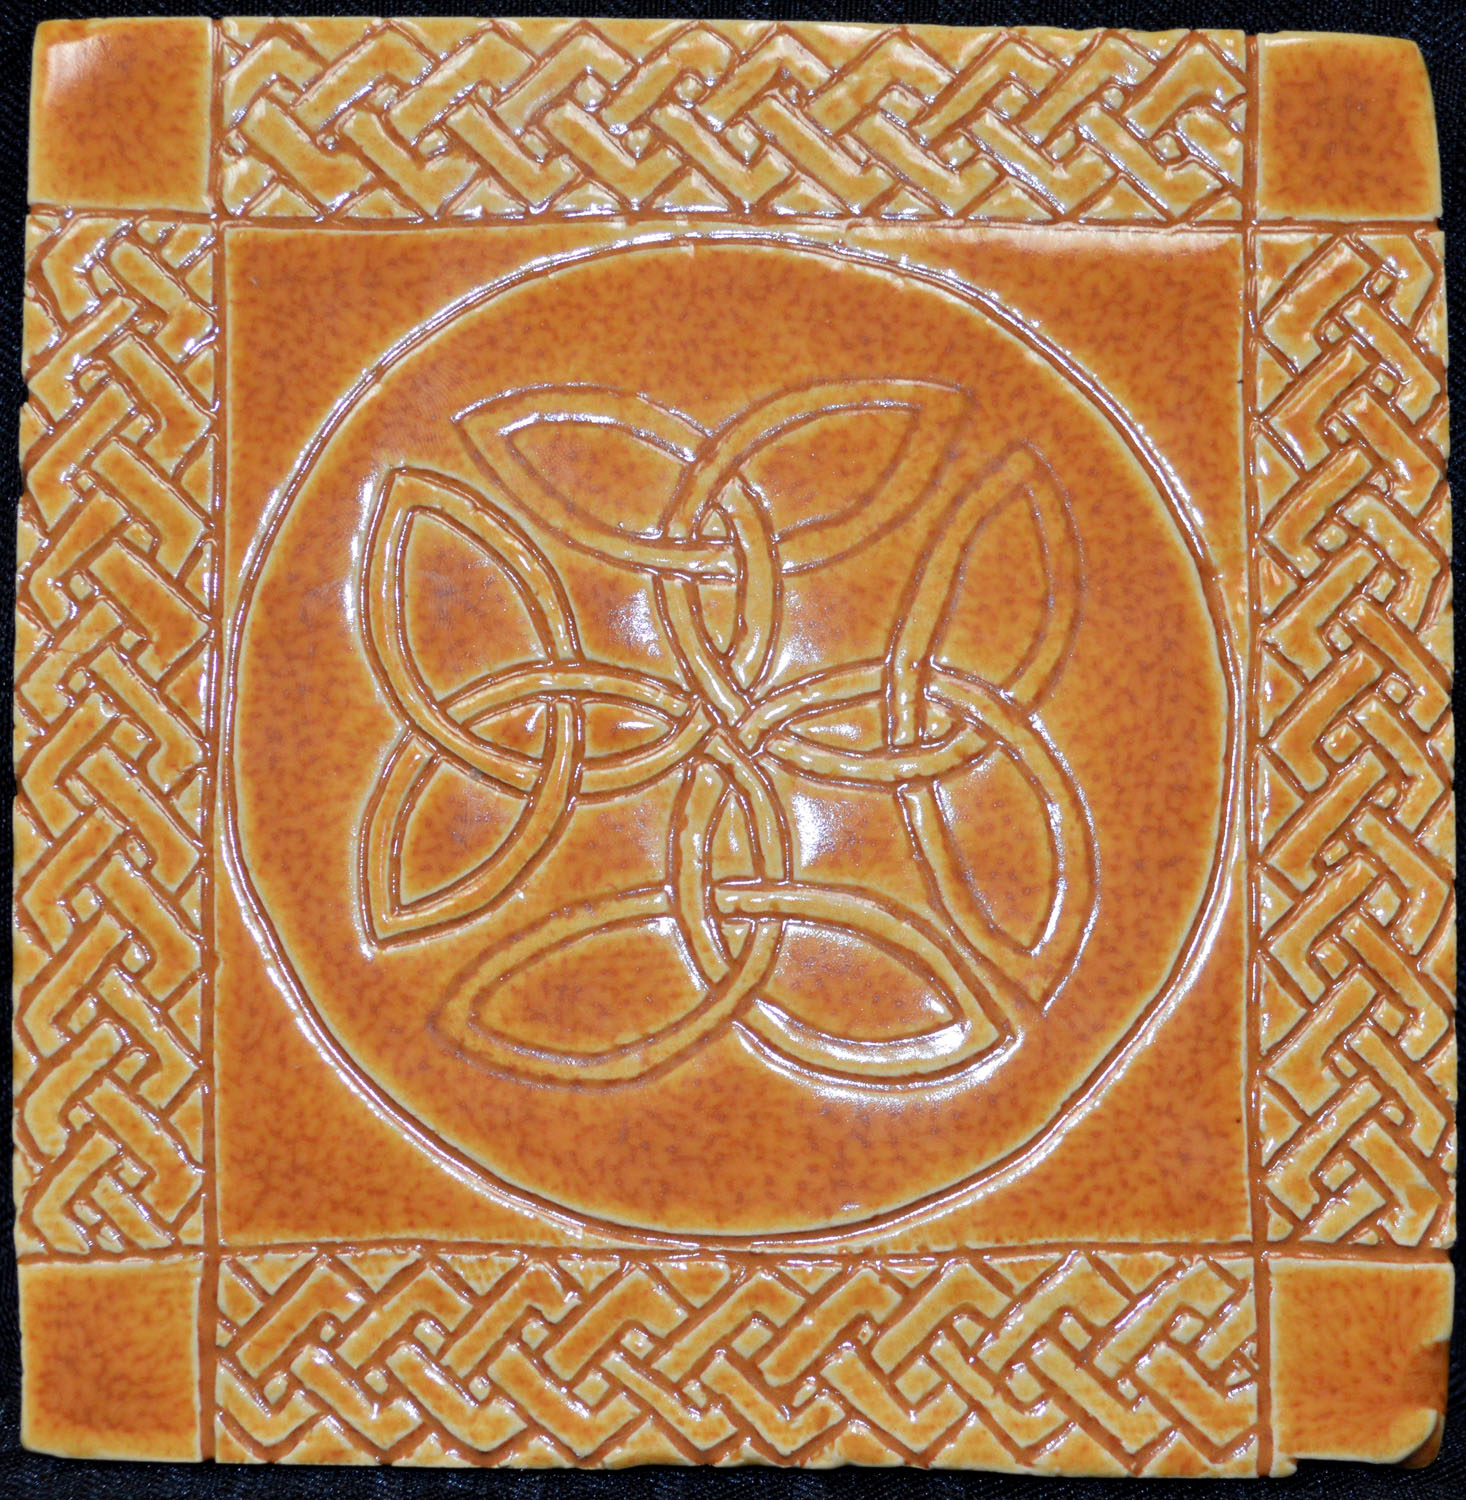 An orange ceramic tile with a Celtic-type design in the center, framed by a braided design around ea